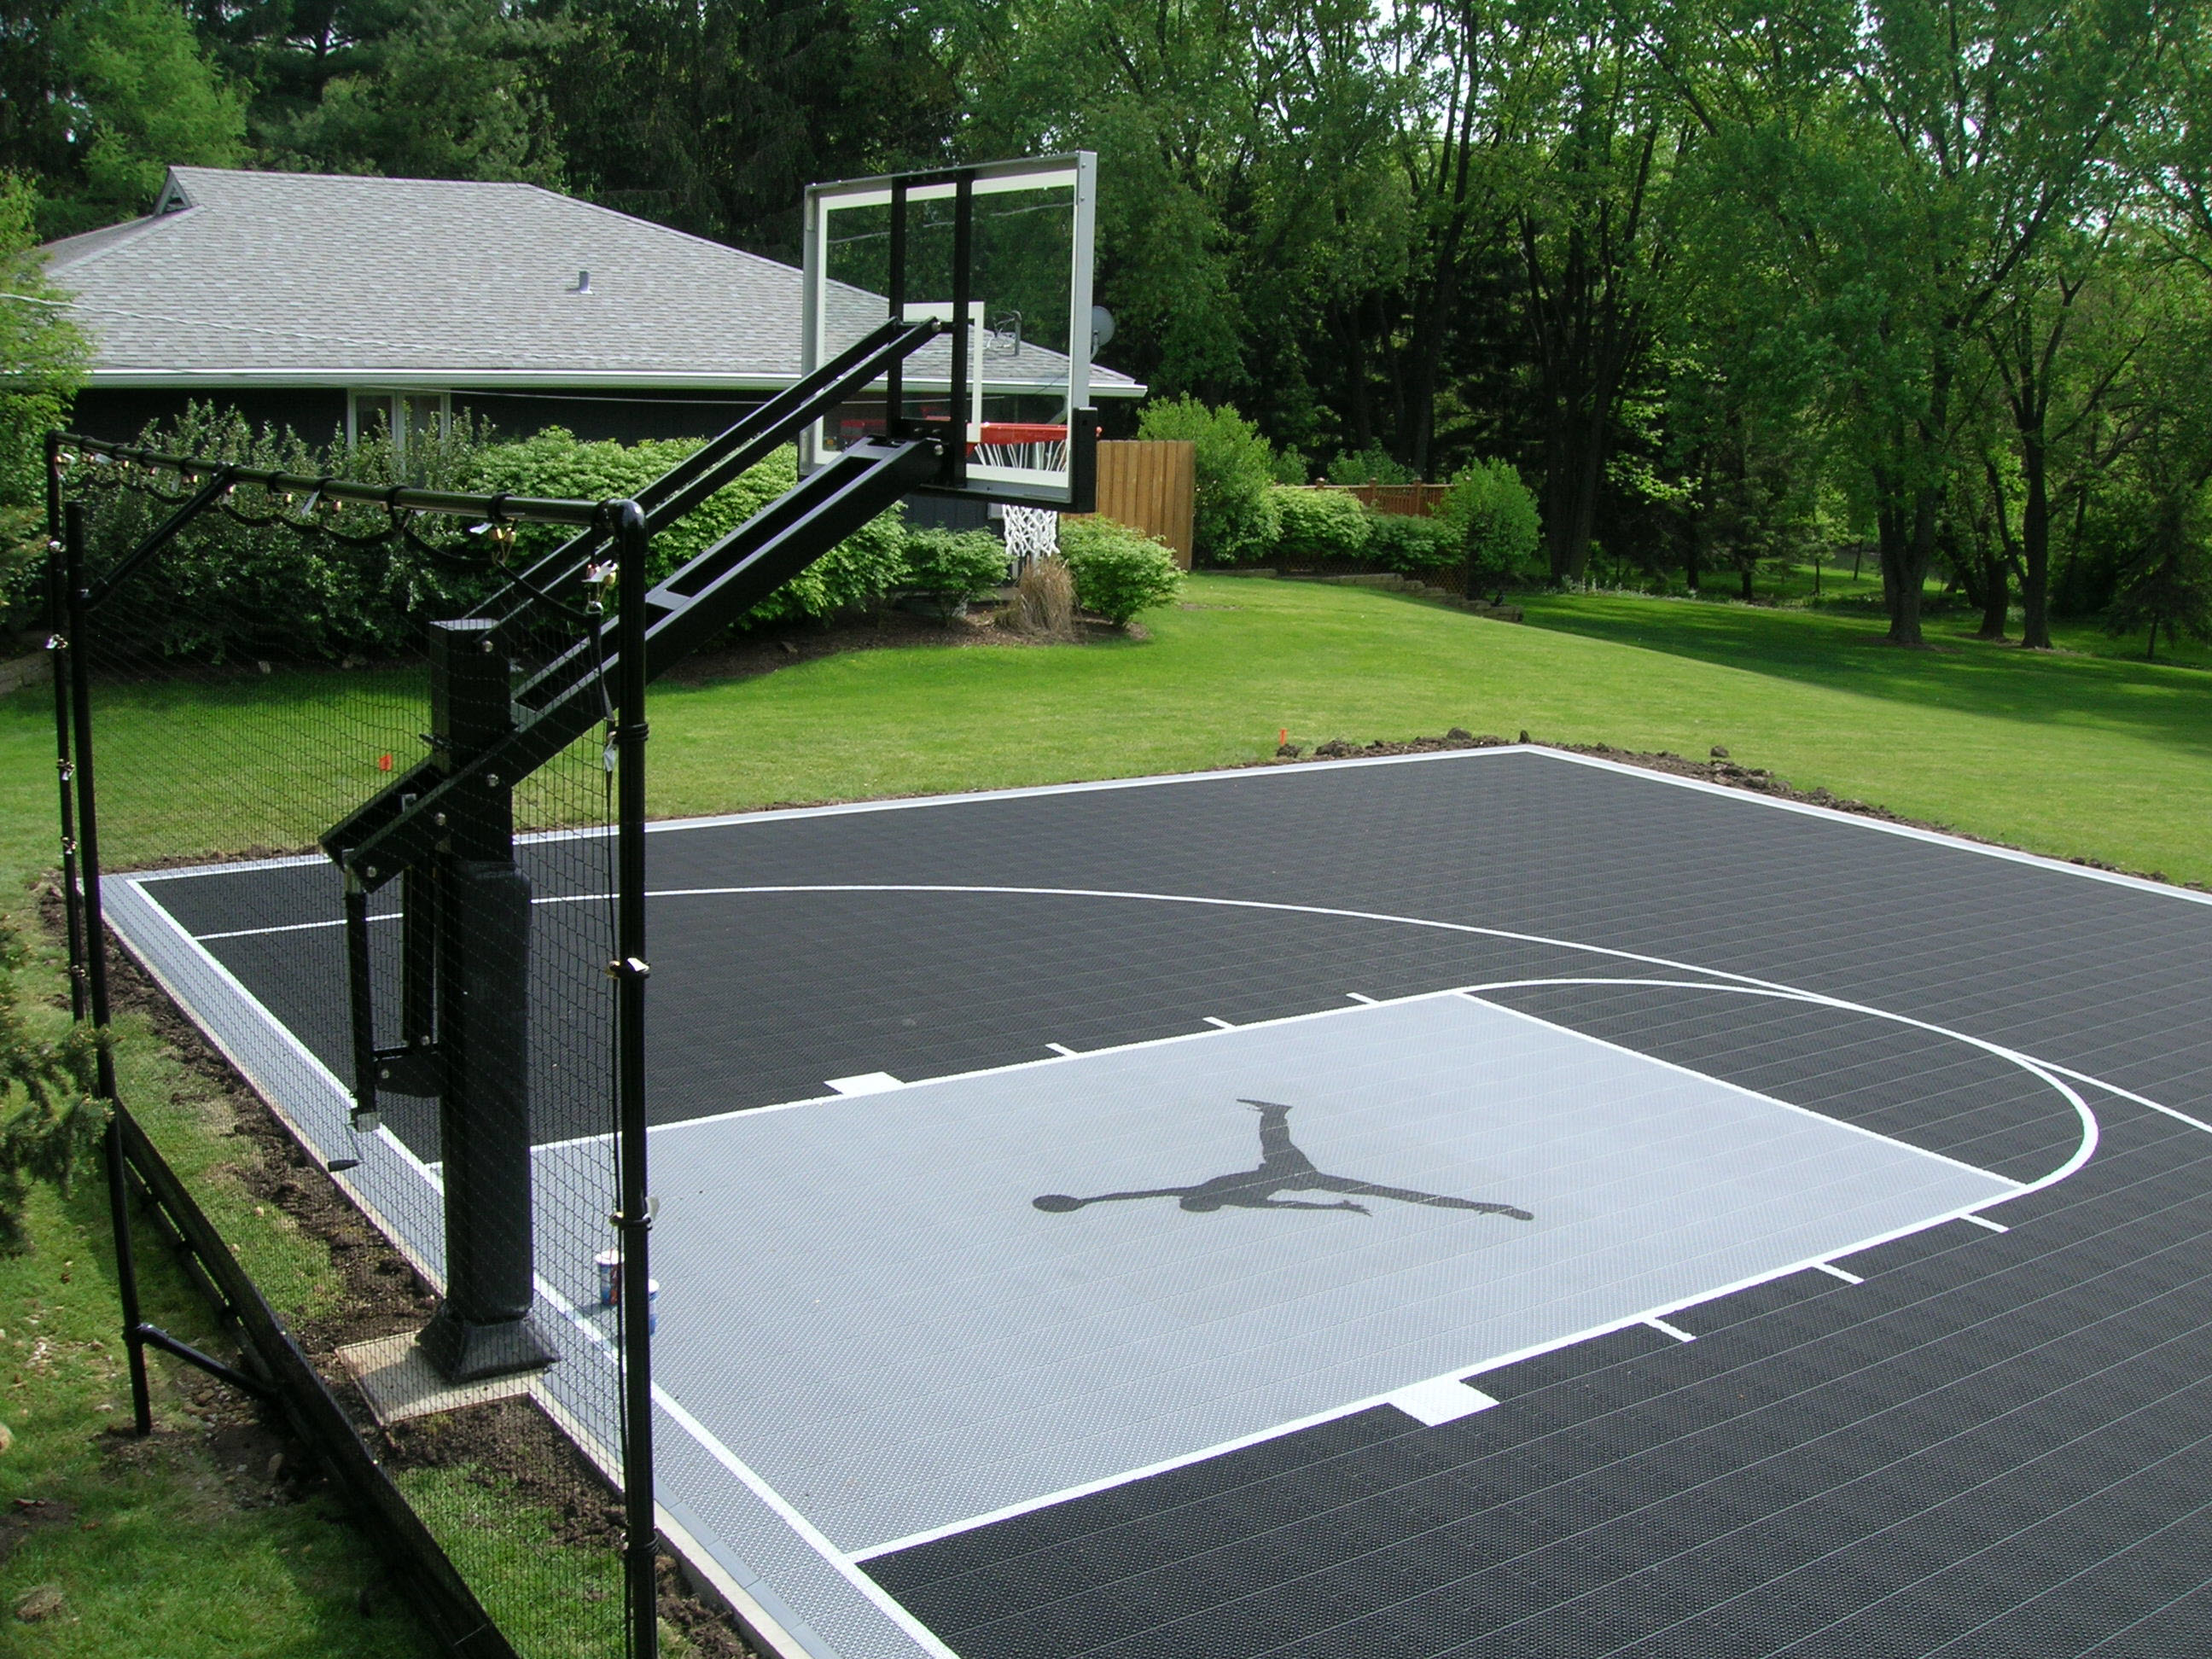 Basketporn top 13 backyard basketball courts basketporn for How much to build a basketball court